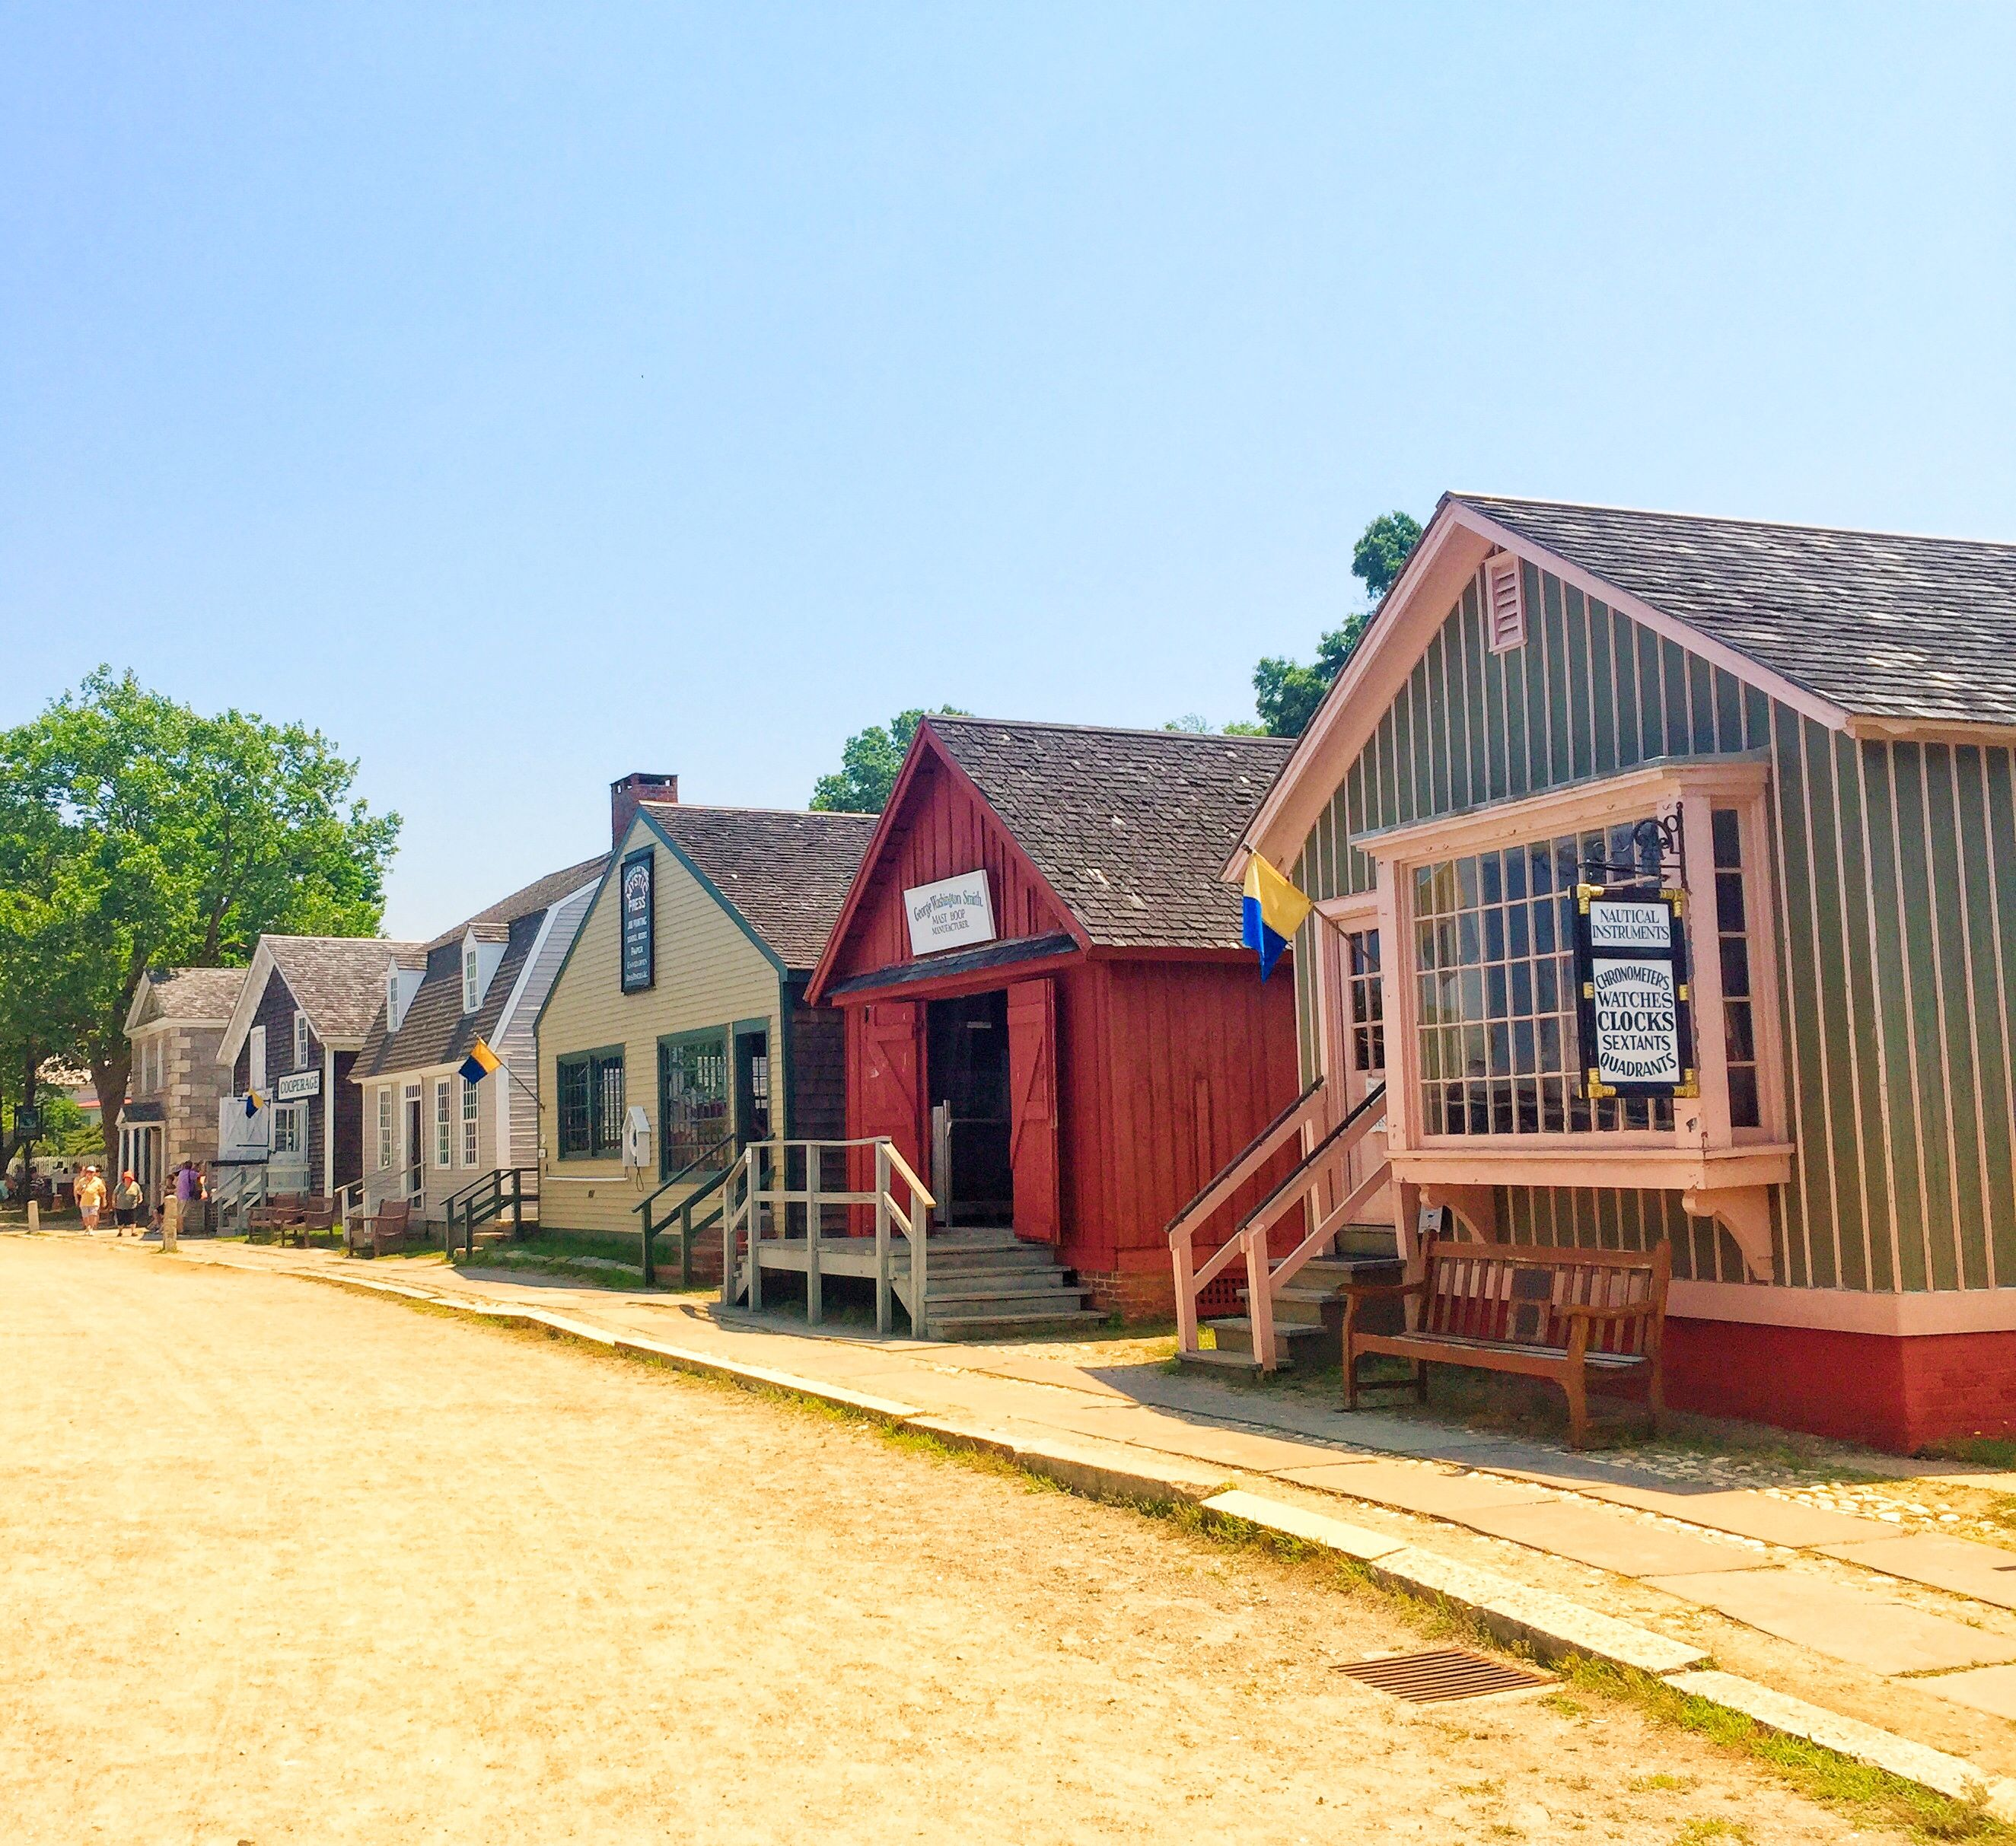 Old Mystic Seaport